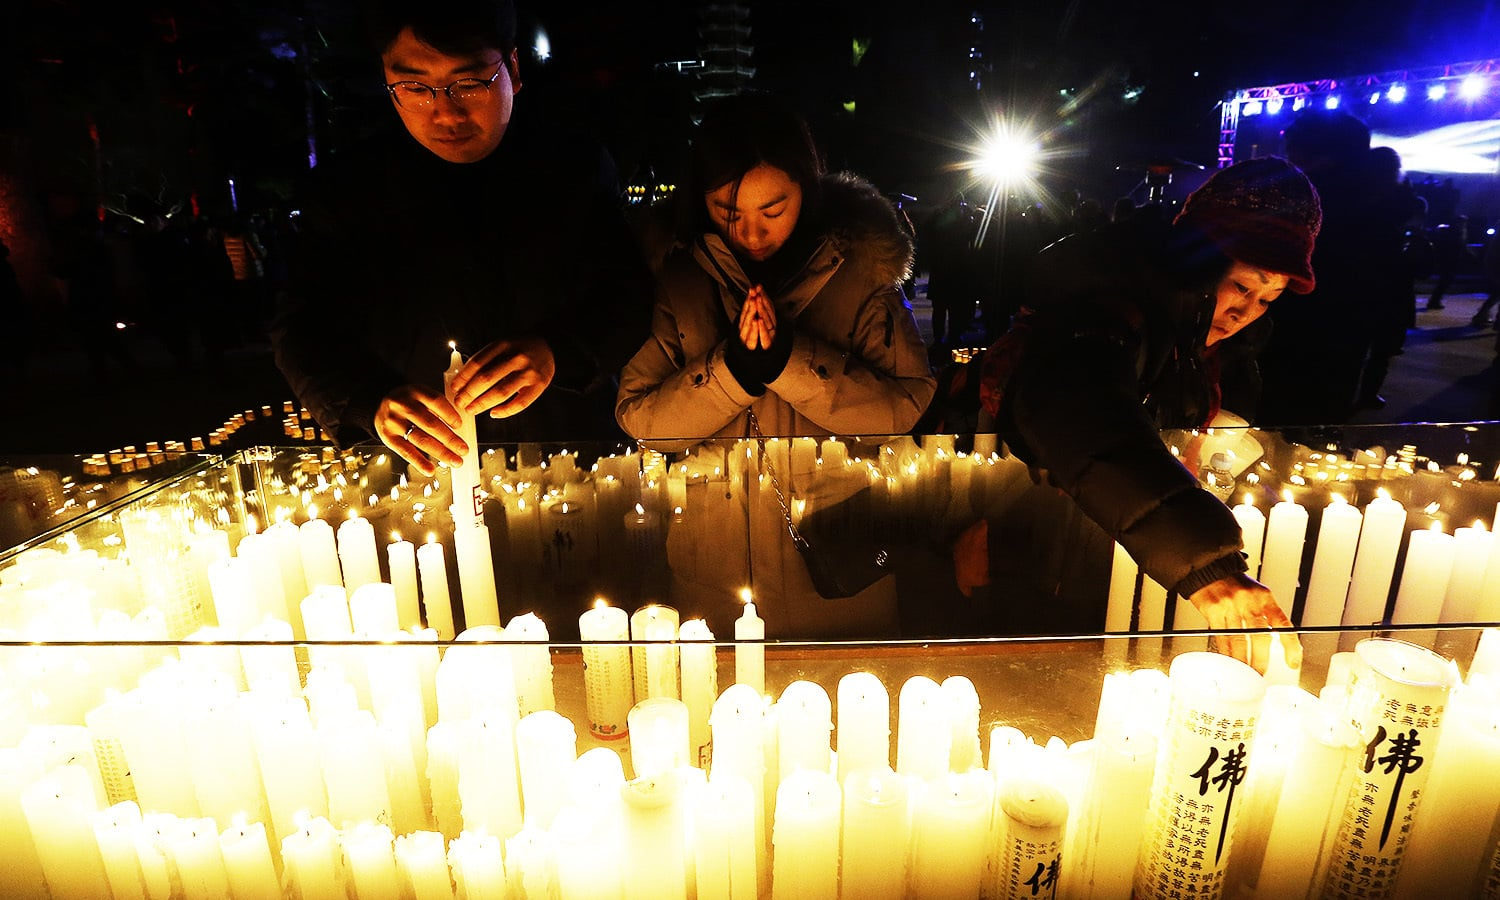 Buddhists place candles during New Year celebrations at Jogyesa Buddhist temple in Seoul, South Korea.—AP